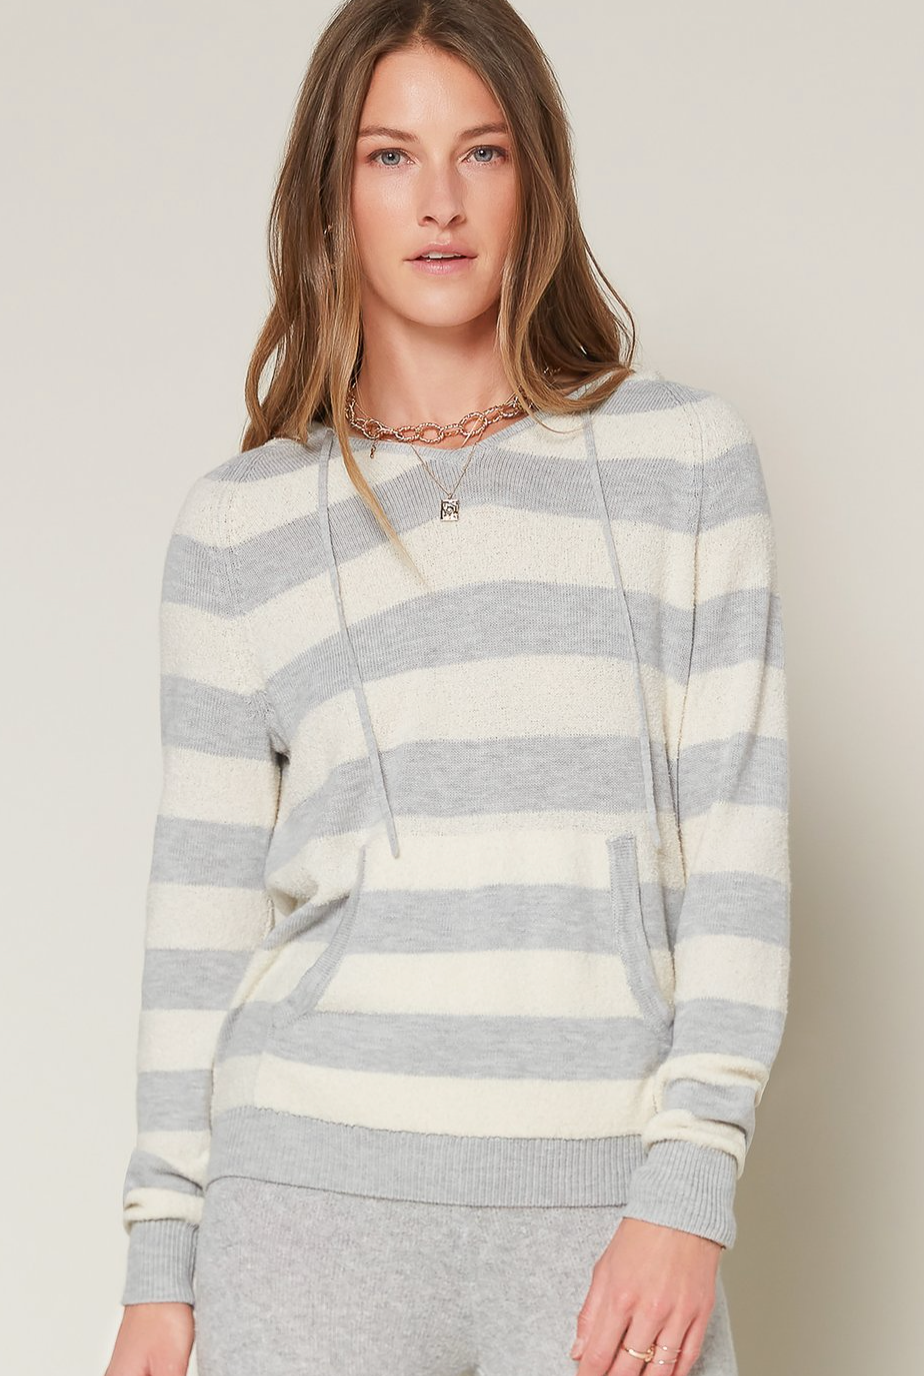 Current Air Soft Striped Hooded Sweater